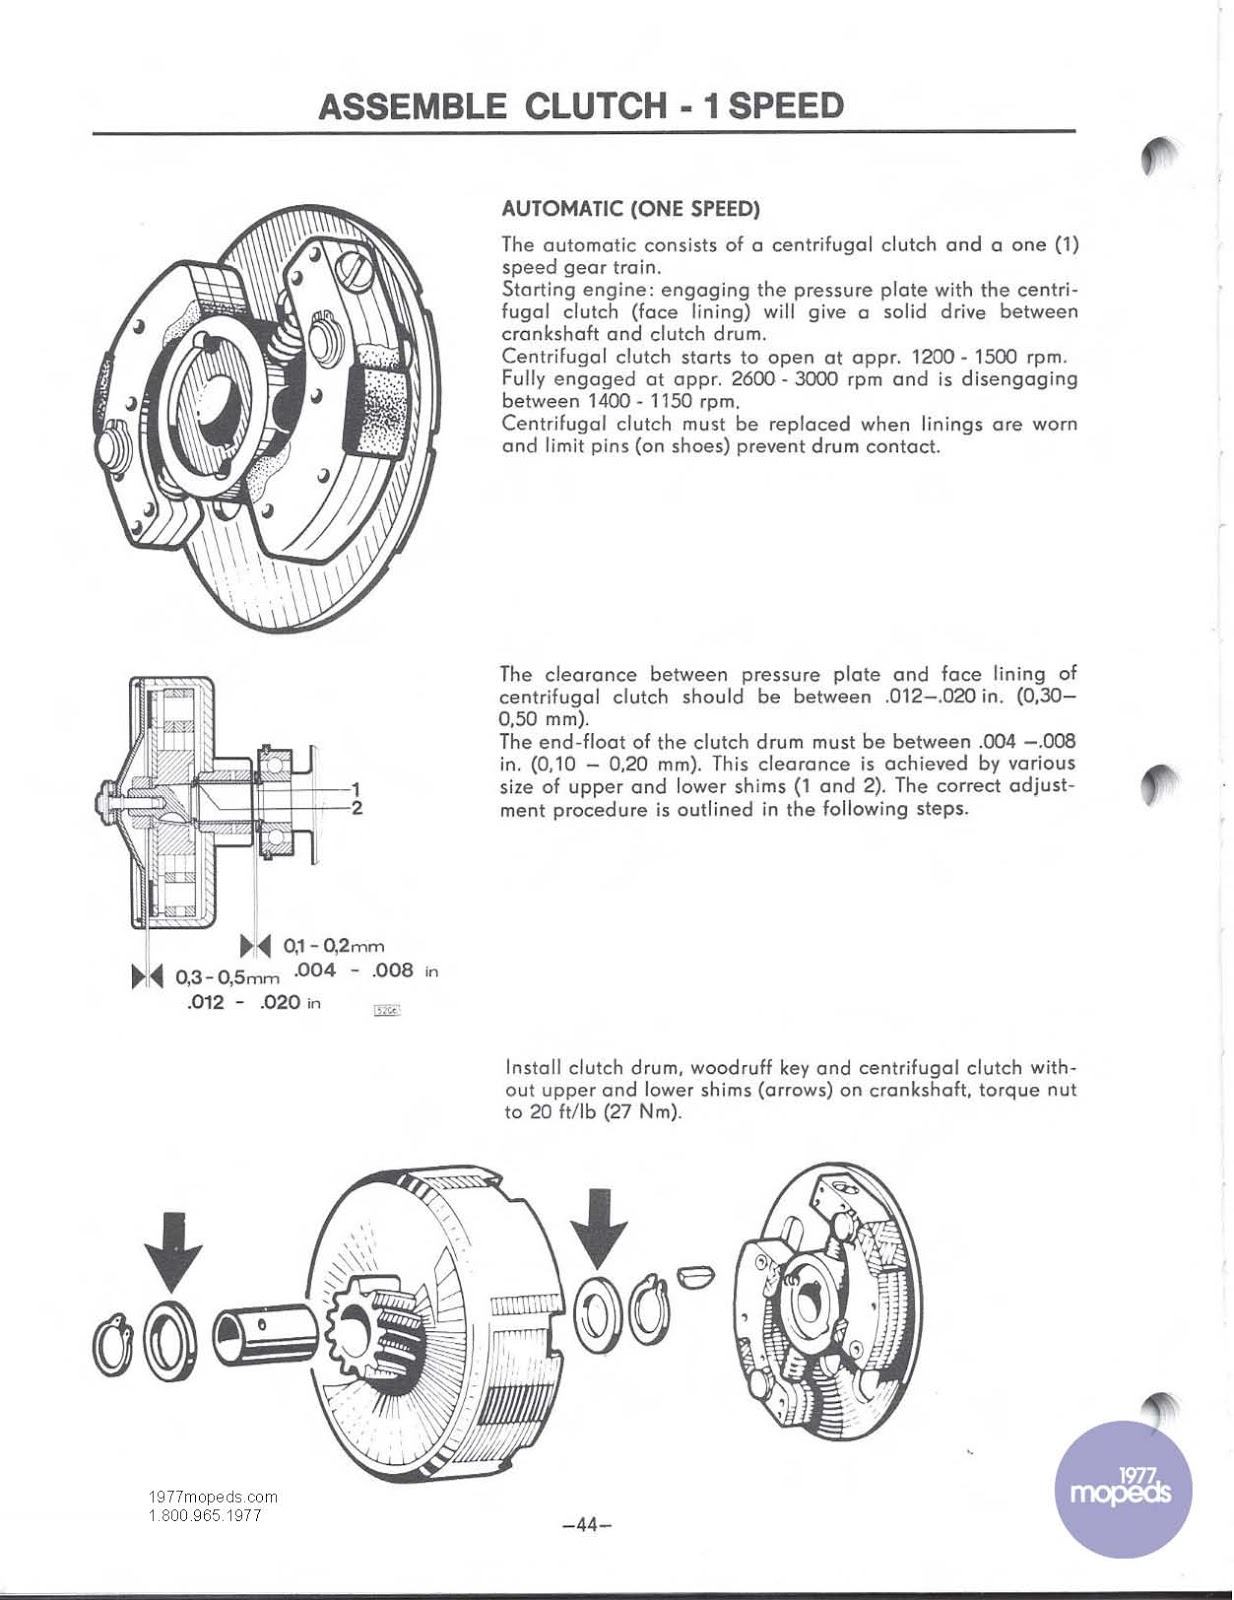 OB1 Repairs: Puch Magnum Maxi Service Manual